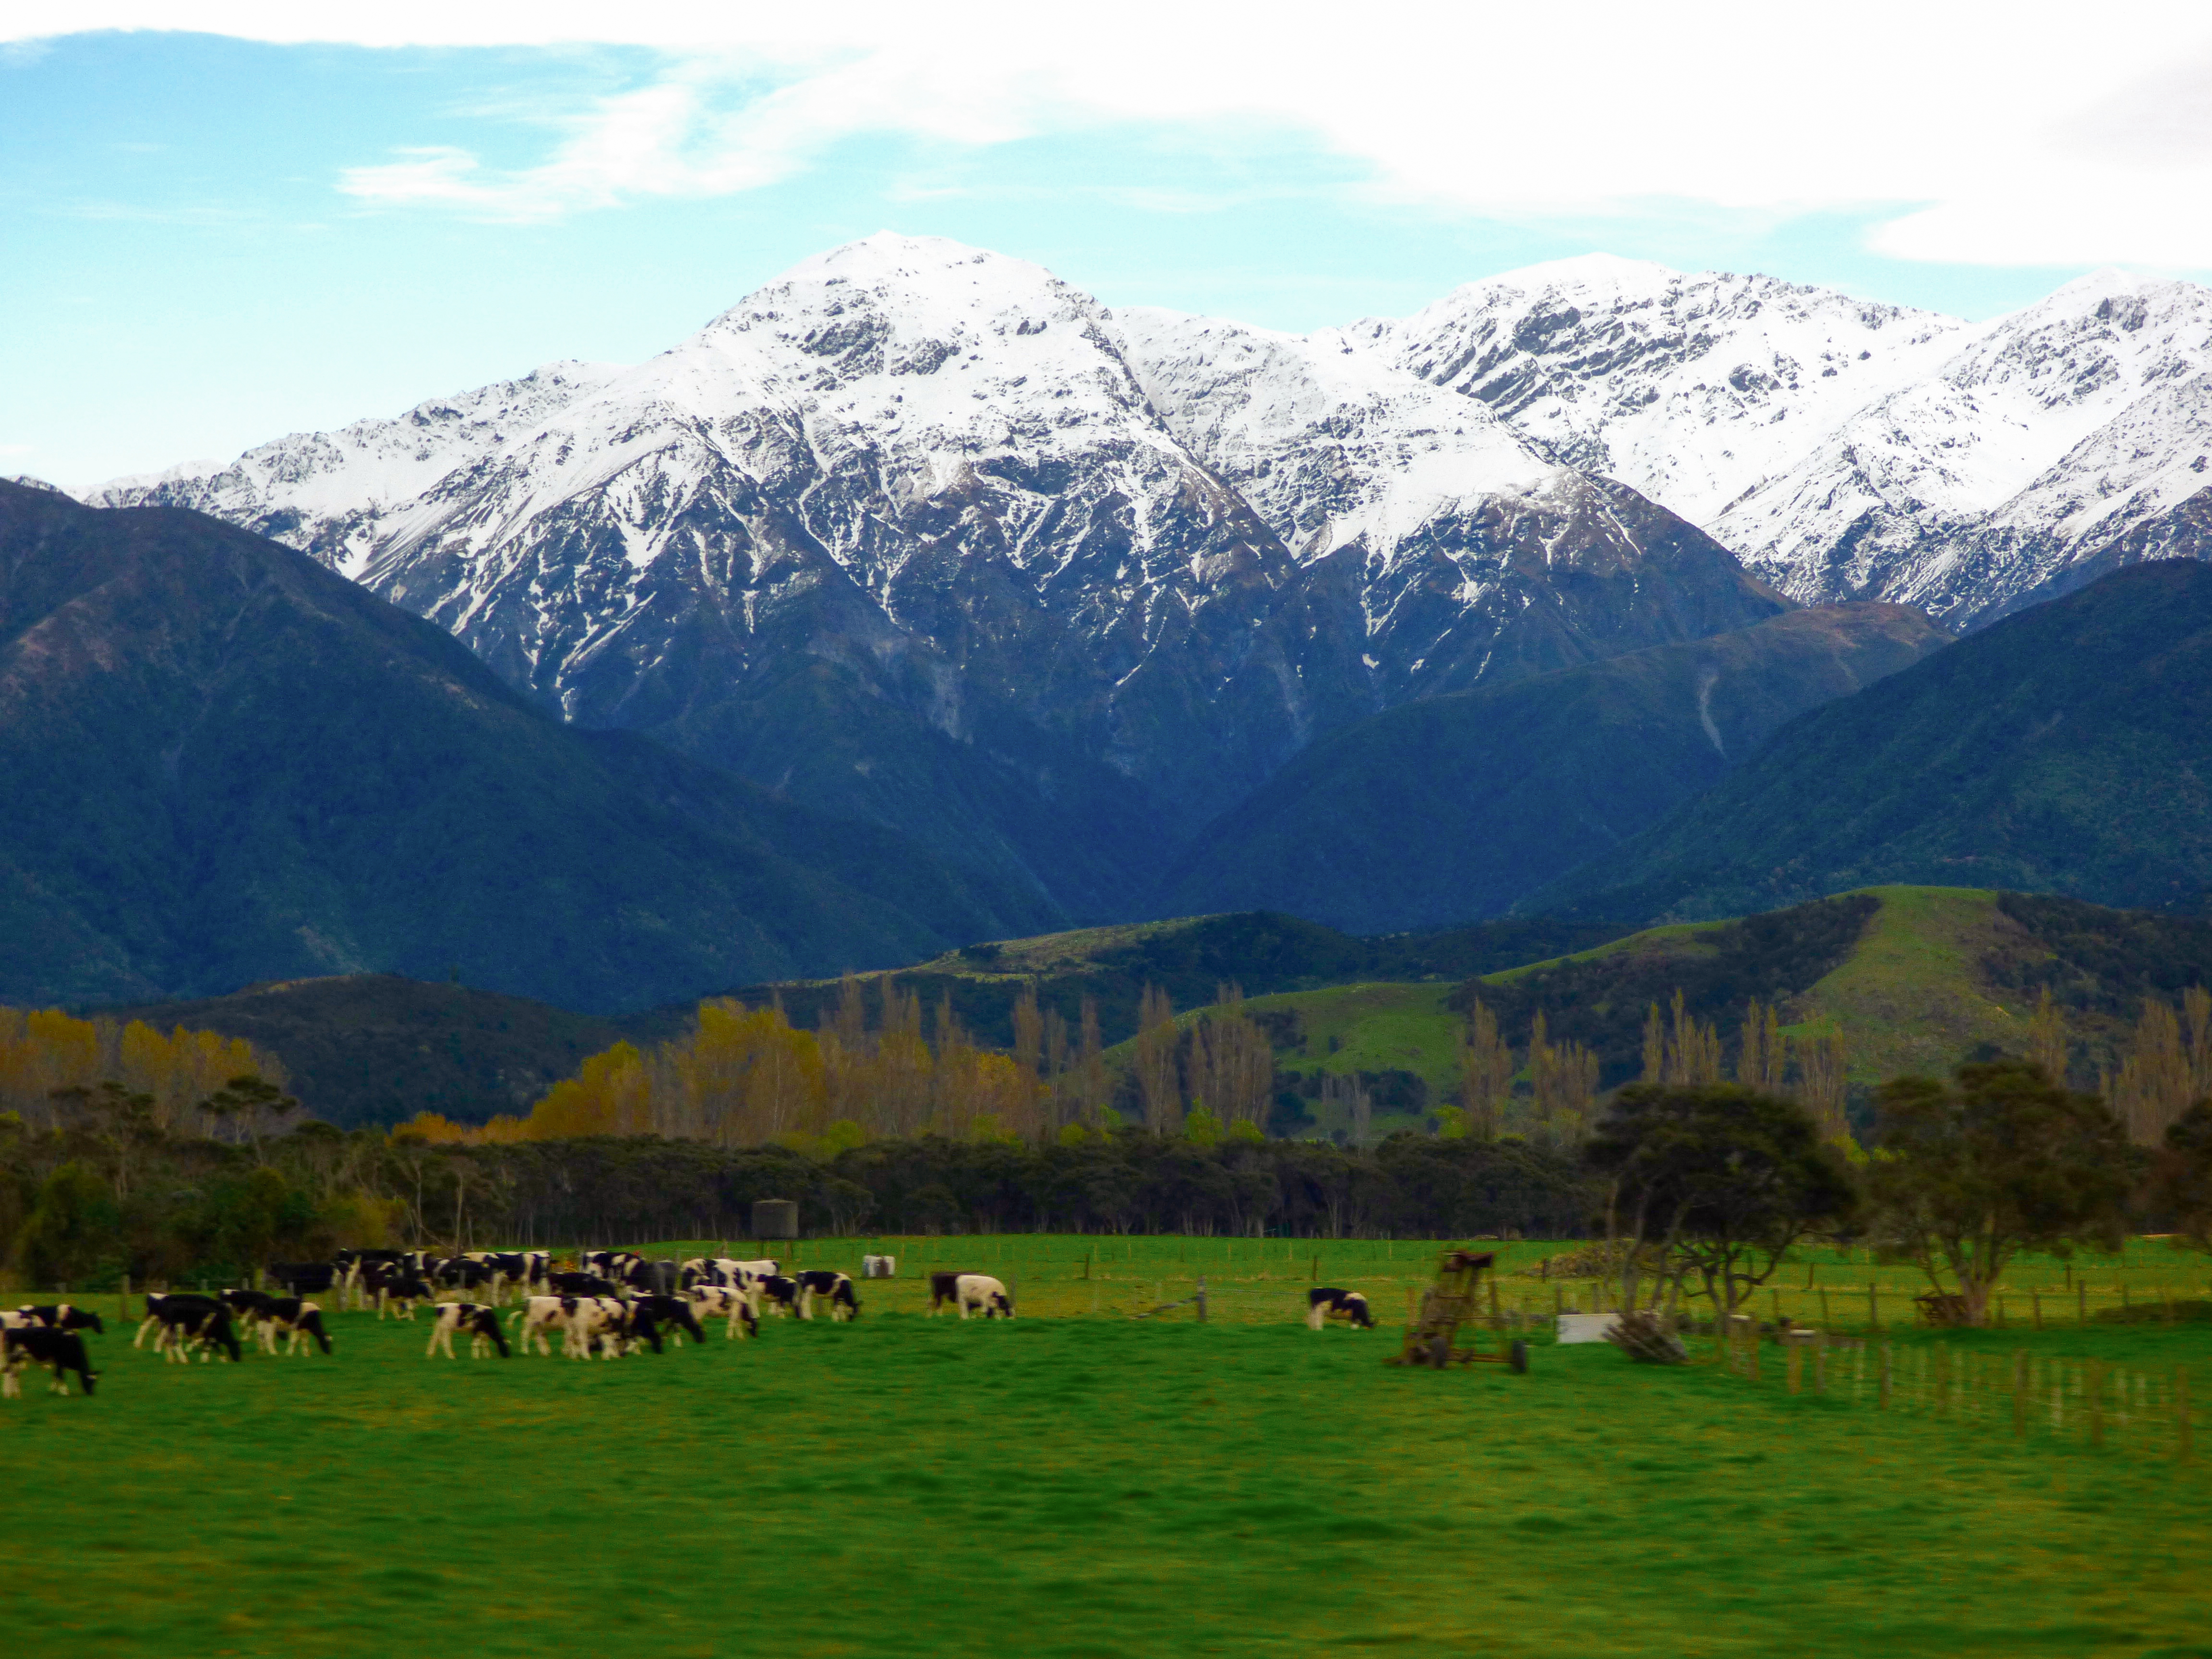 Kaikoura Ranges New Zealand with some cows in a field